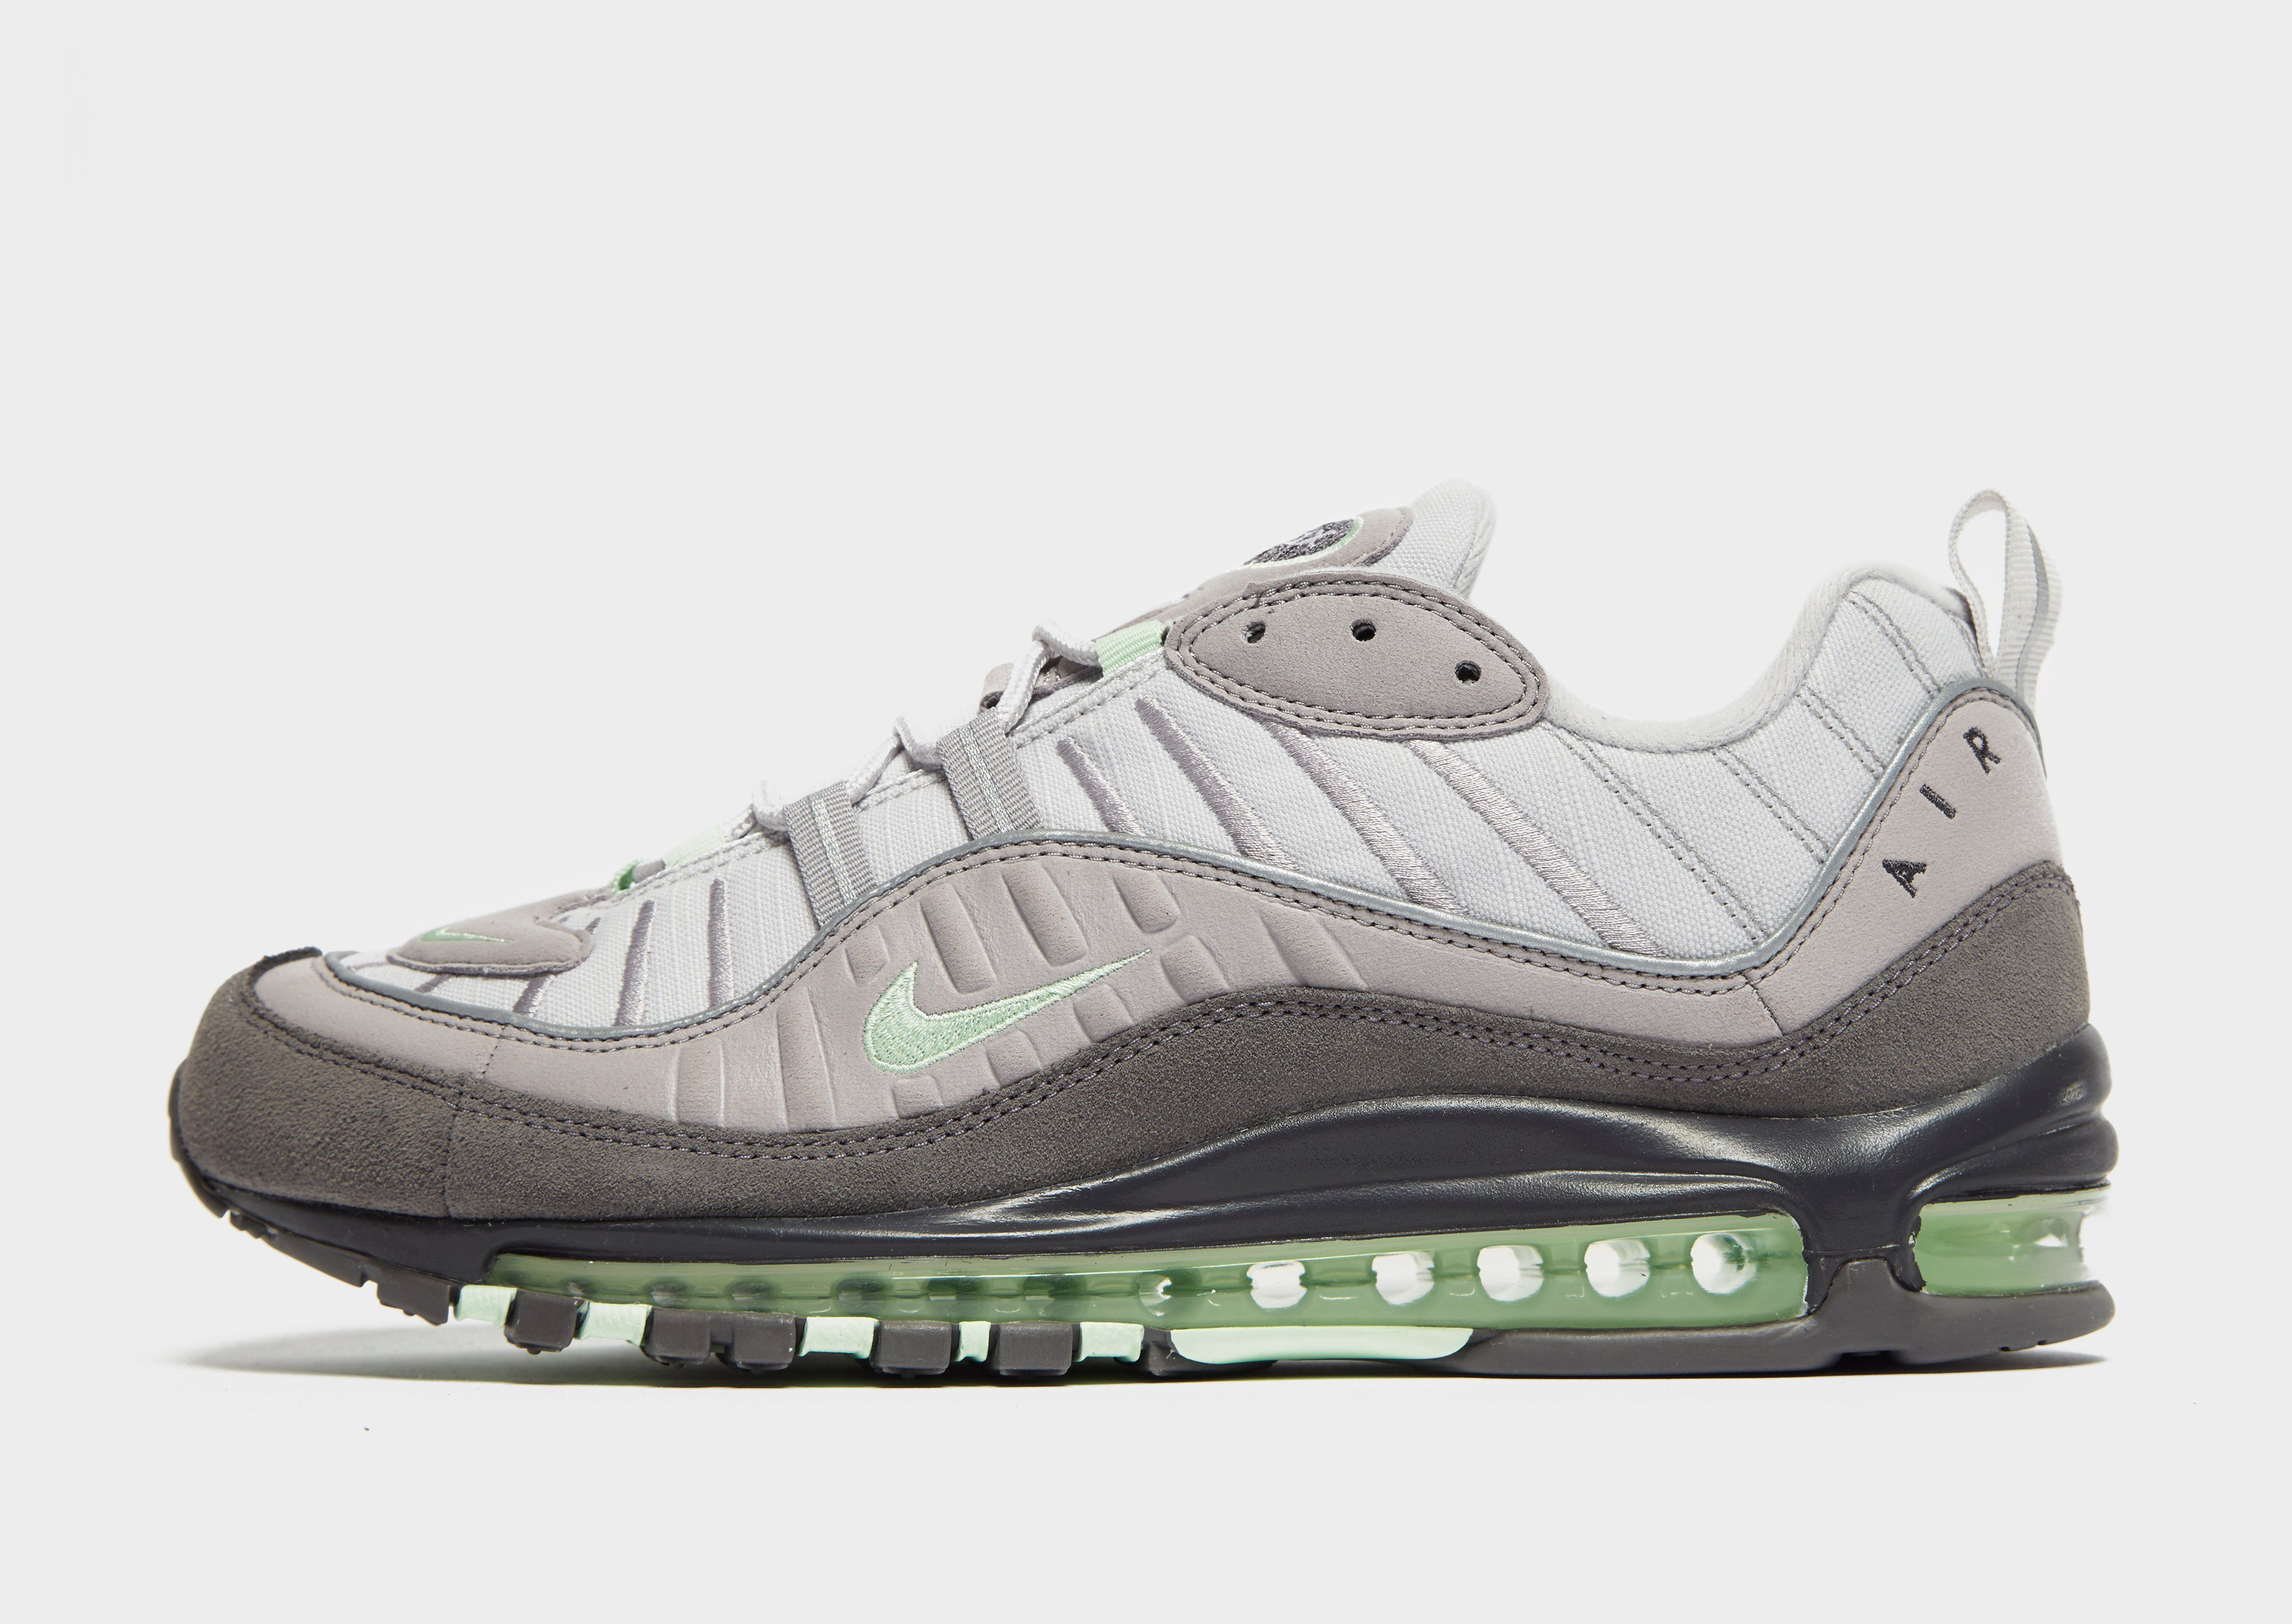 la moitié 49efe c5d37 Nike Air Max 98 SE | JD Sports